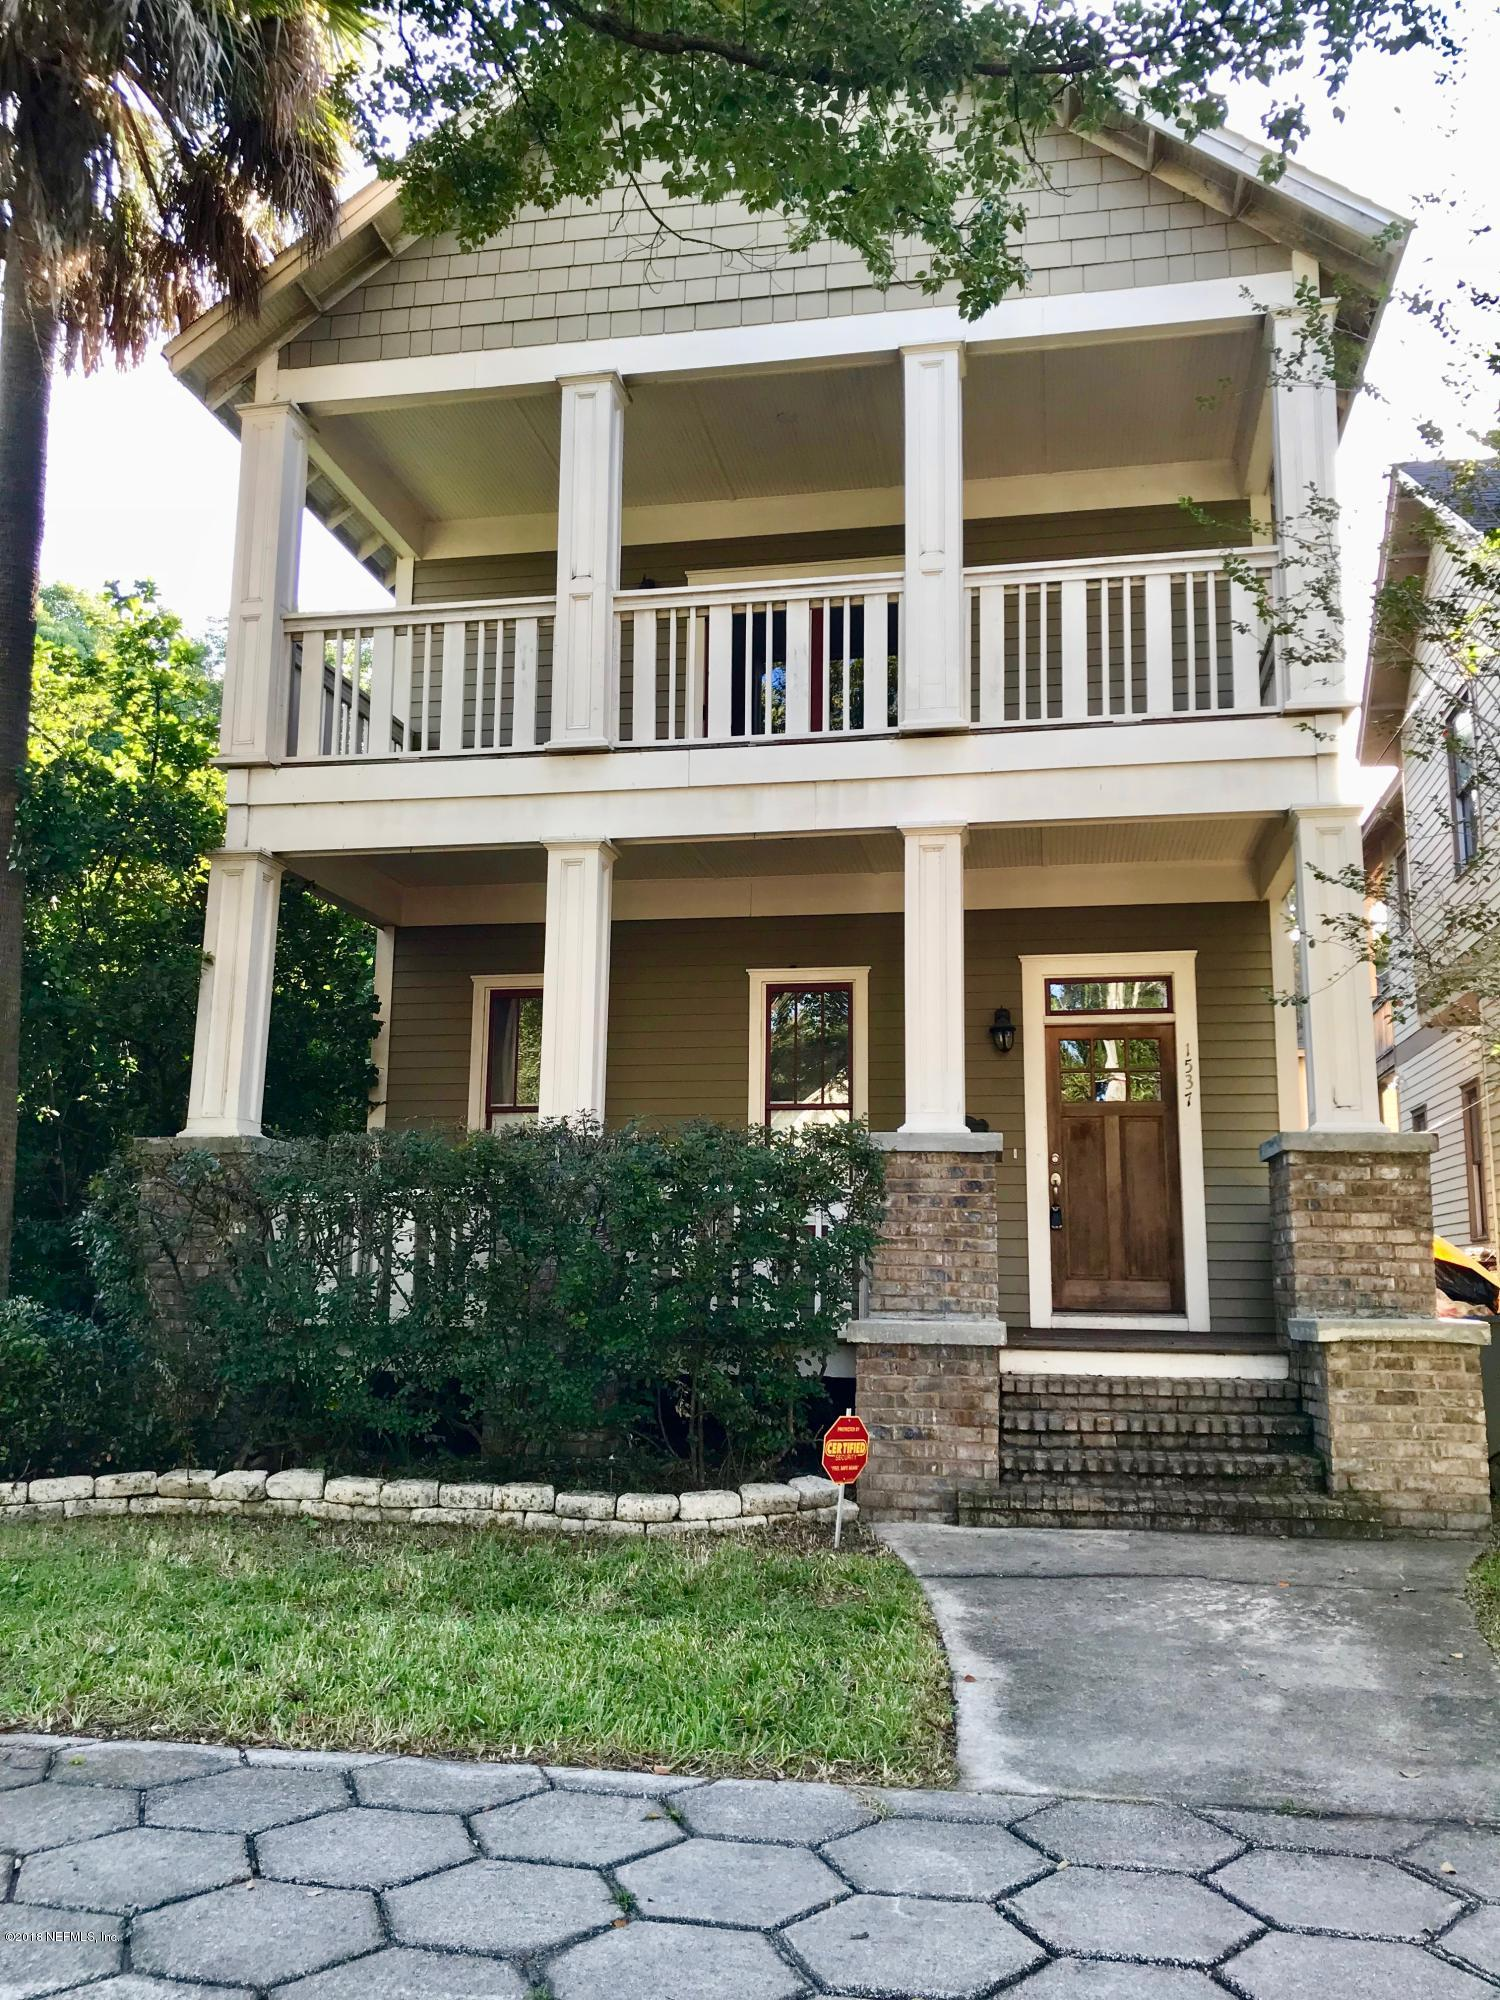 1537 MARKET, JACKSONVILLE, FLORIDA 32206, 3 Bedrooms Bedrooms, ,2 BathroomsBathrooms,Residential - single family,For sale,MARKET,944023